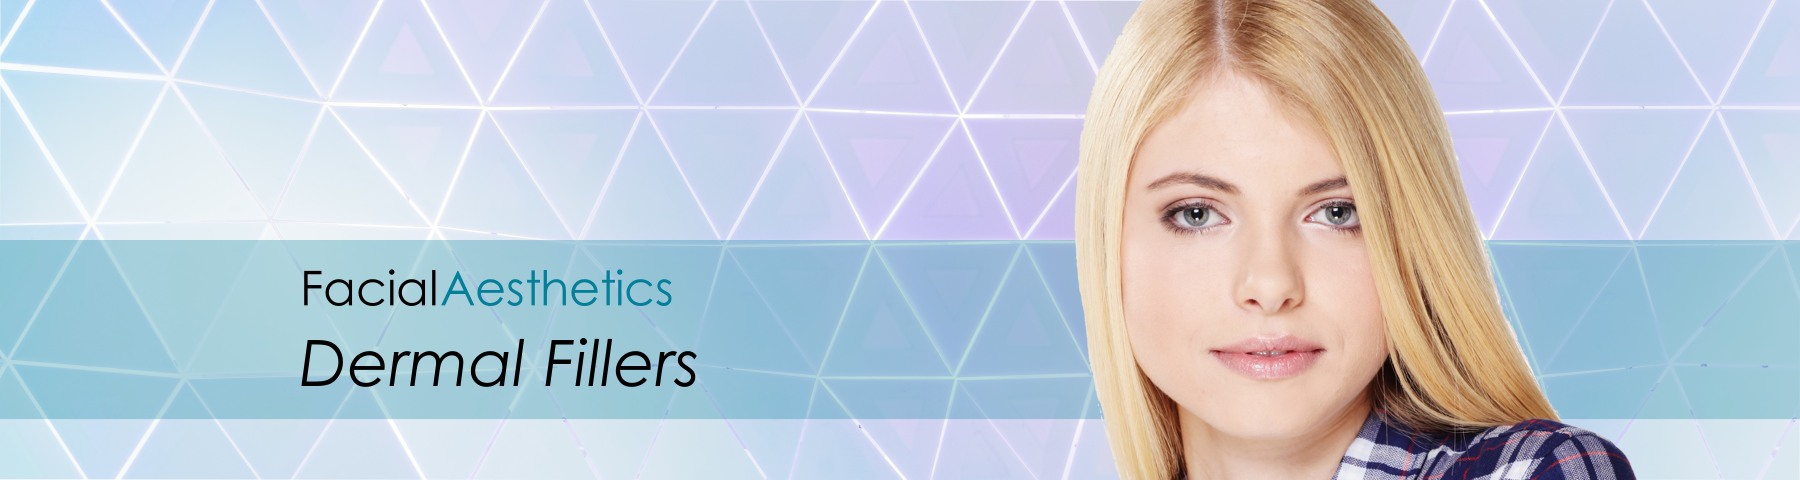 Ranelagh Dental Clinic - facial aesthetics - dermal fillers